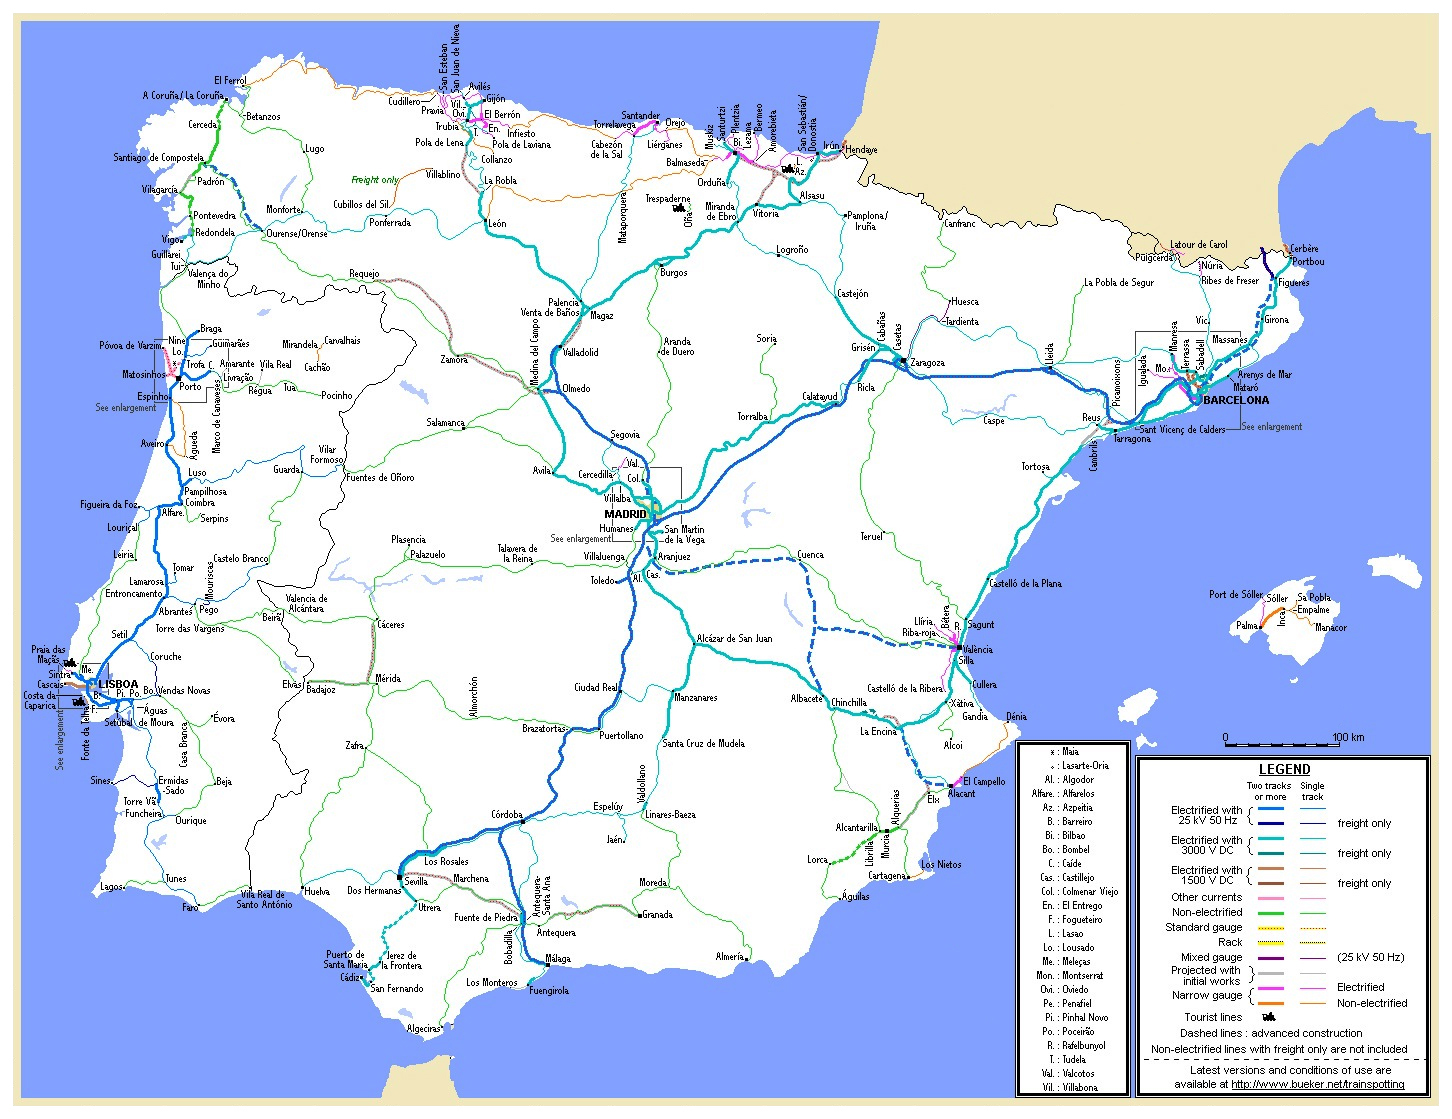 Map Of Portugal And Spain Detailed.Maps Of Spain Detailed Map Of Spain In English Tourist Map Map